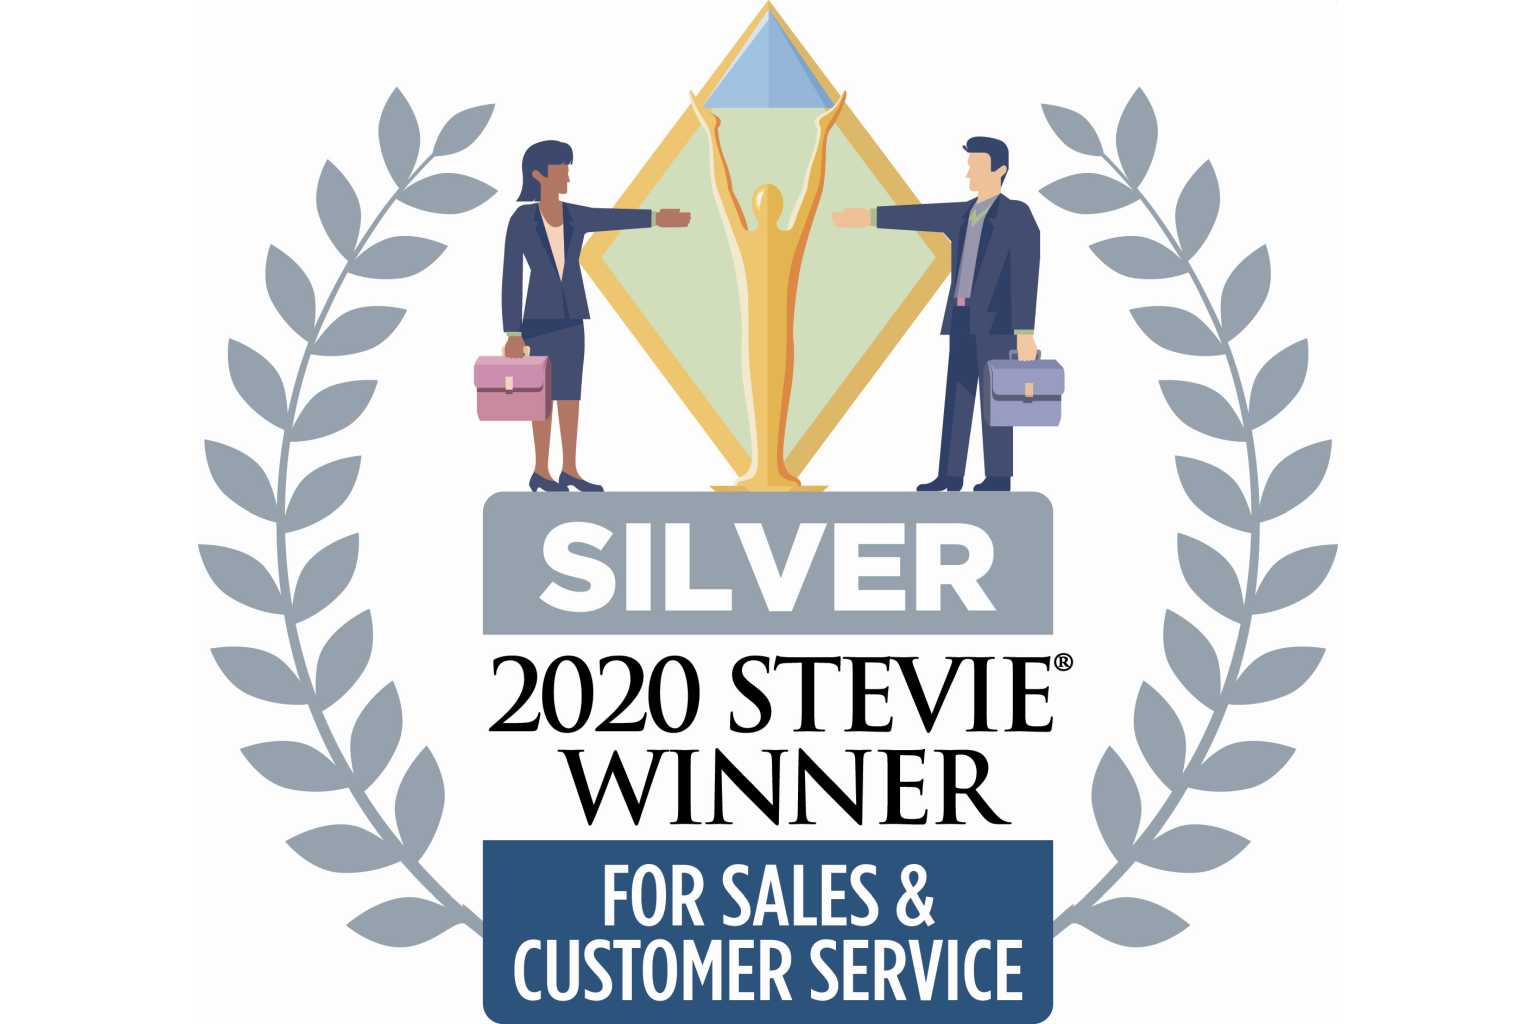 CT Corporation wins Stevie Customer Service Award